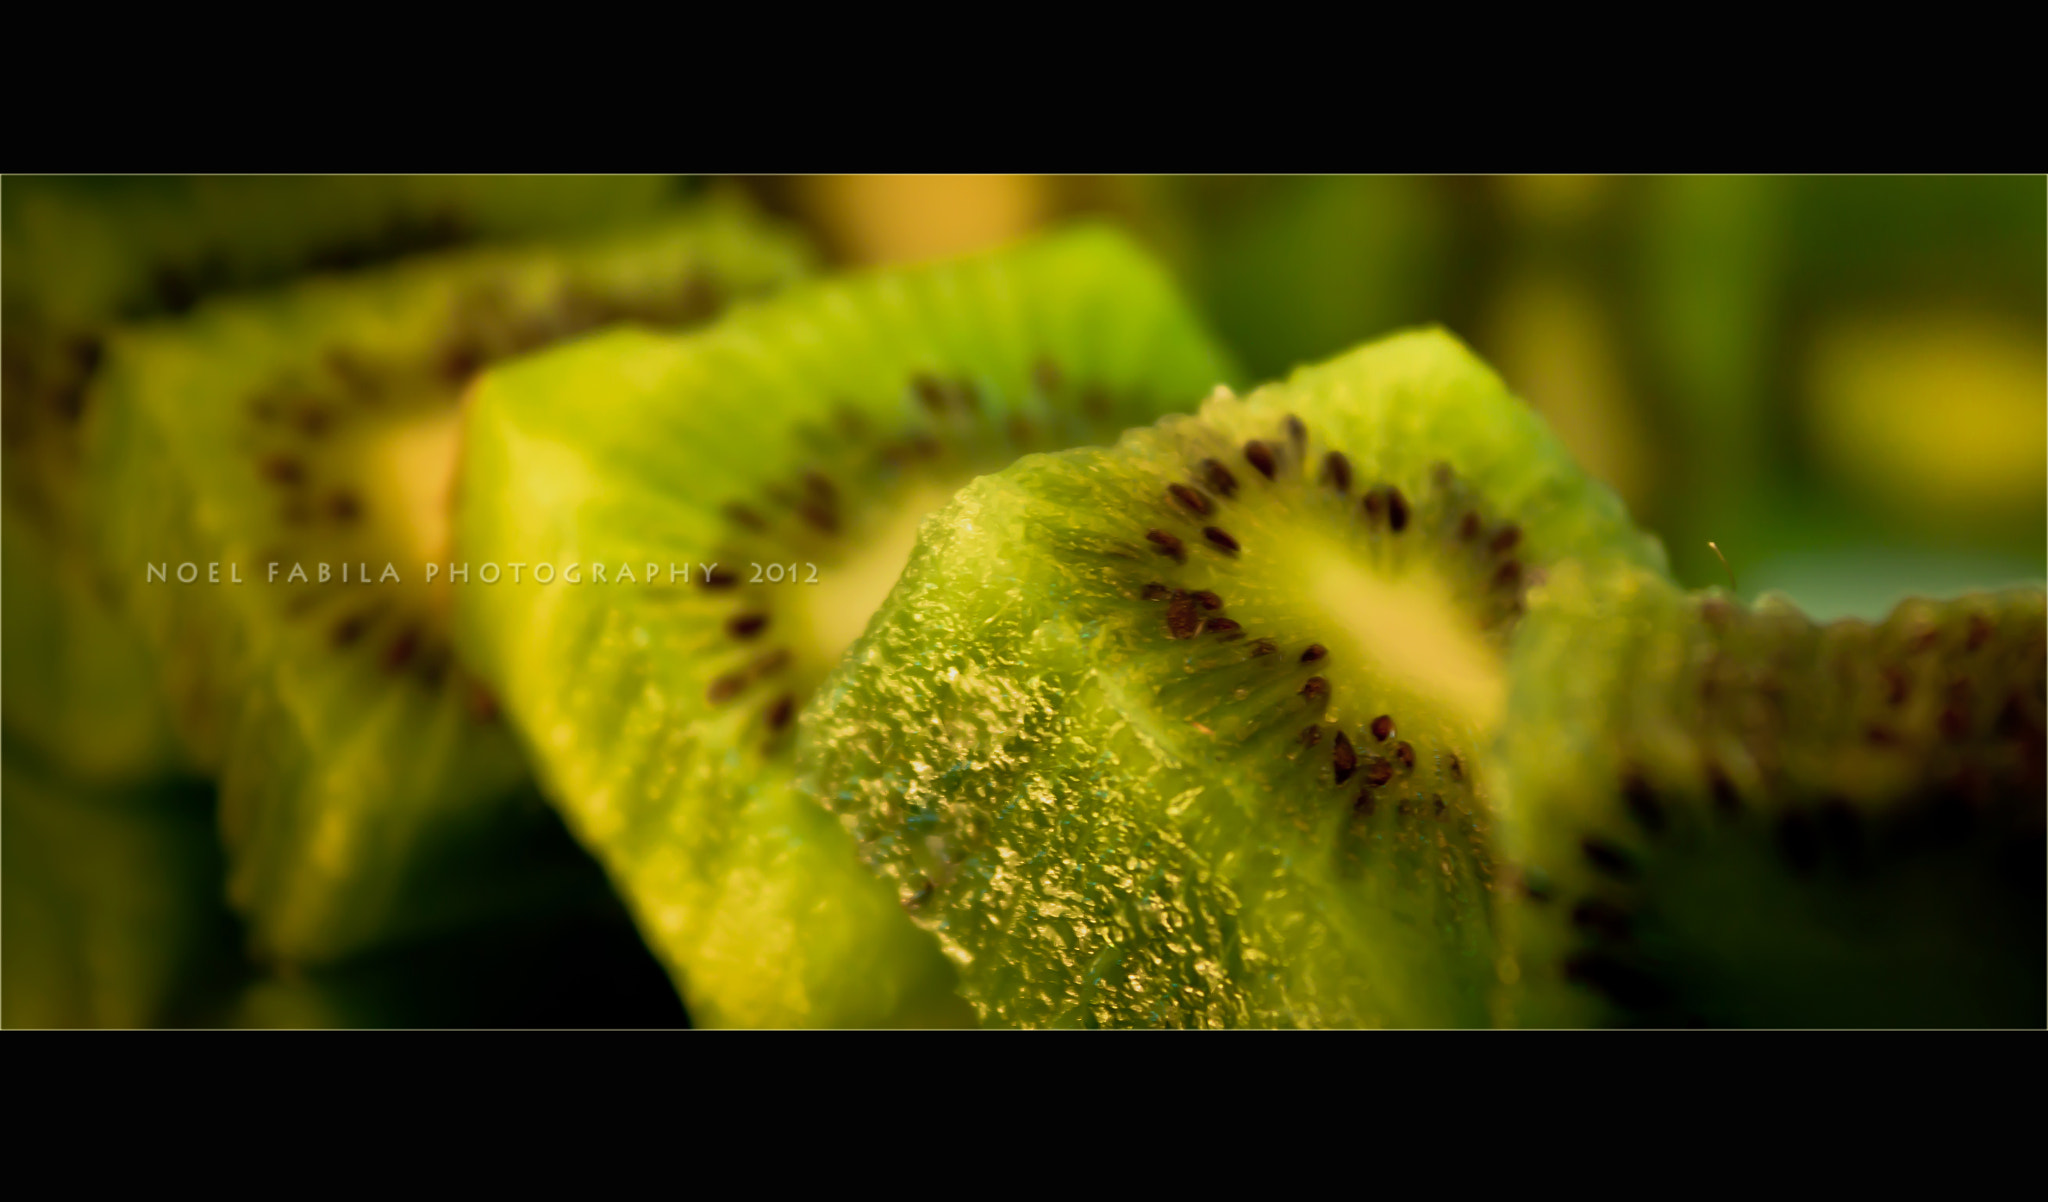 Photograph KIWI by Noel Fabila on 500px